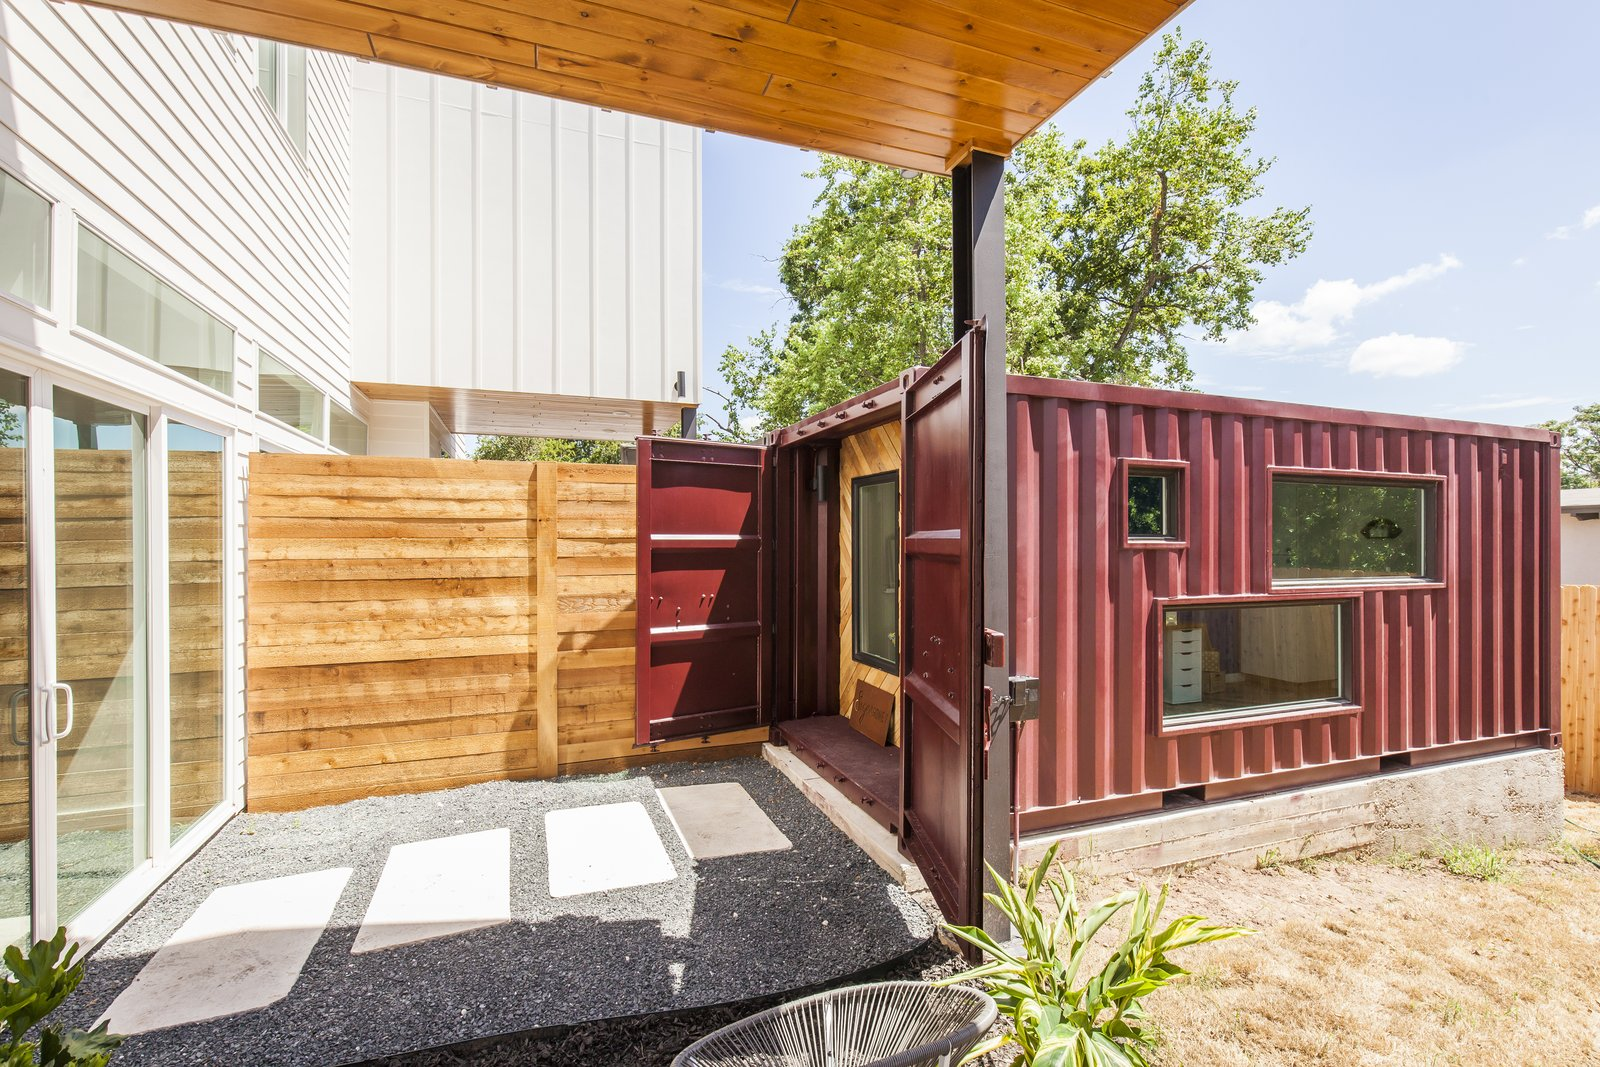 Container Haus Dresden Https Dwell Article The Vindheim Cabin Snowbound In